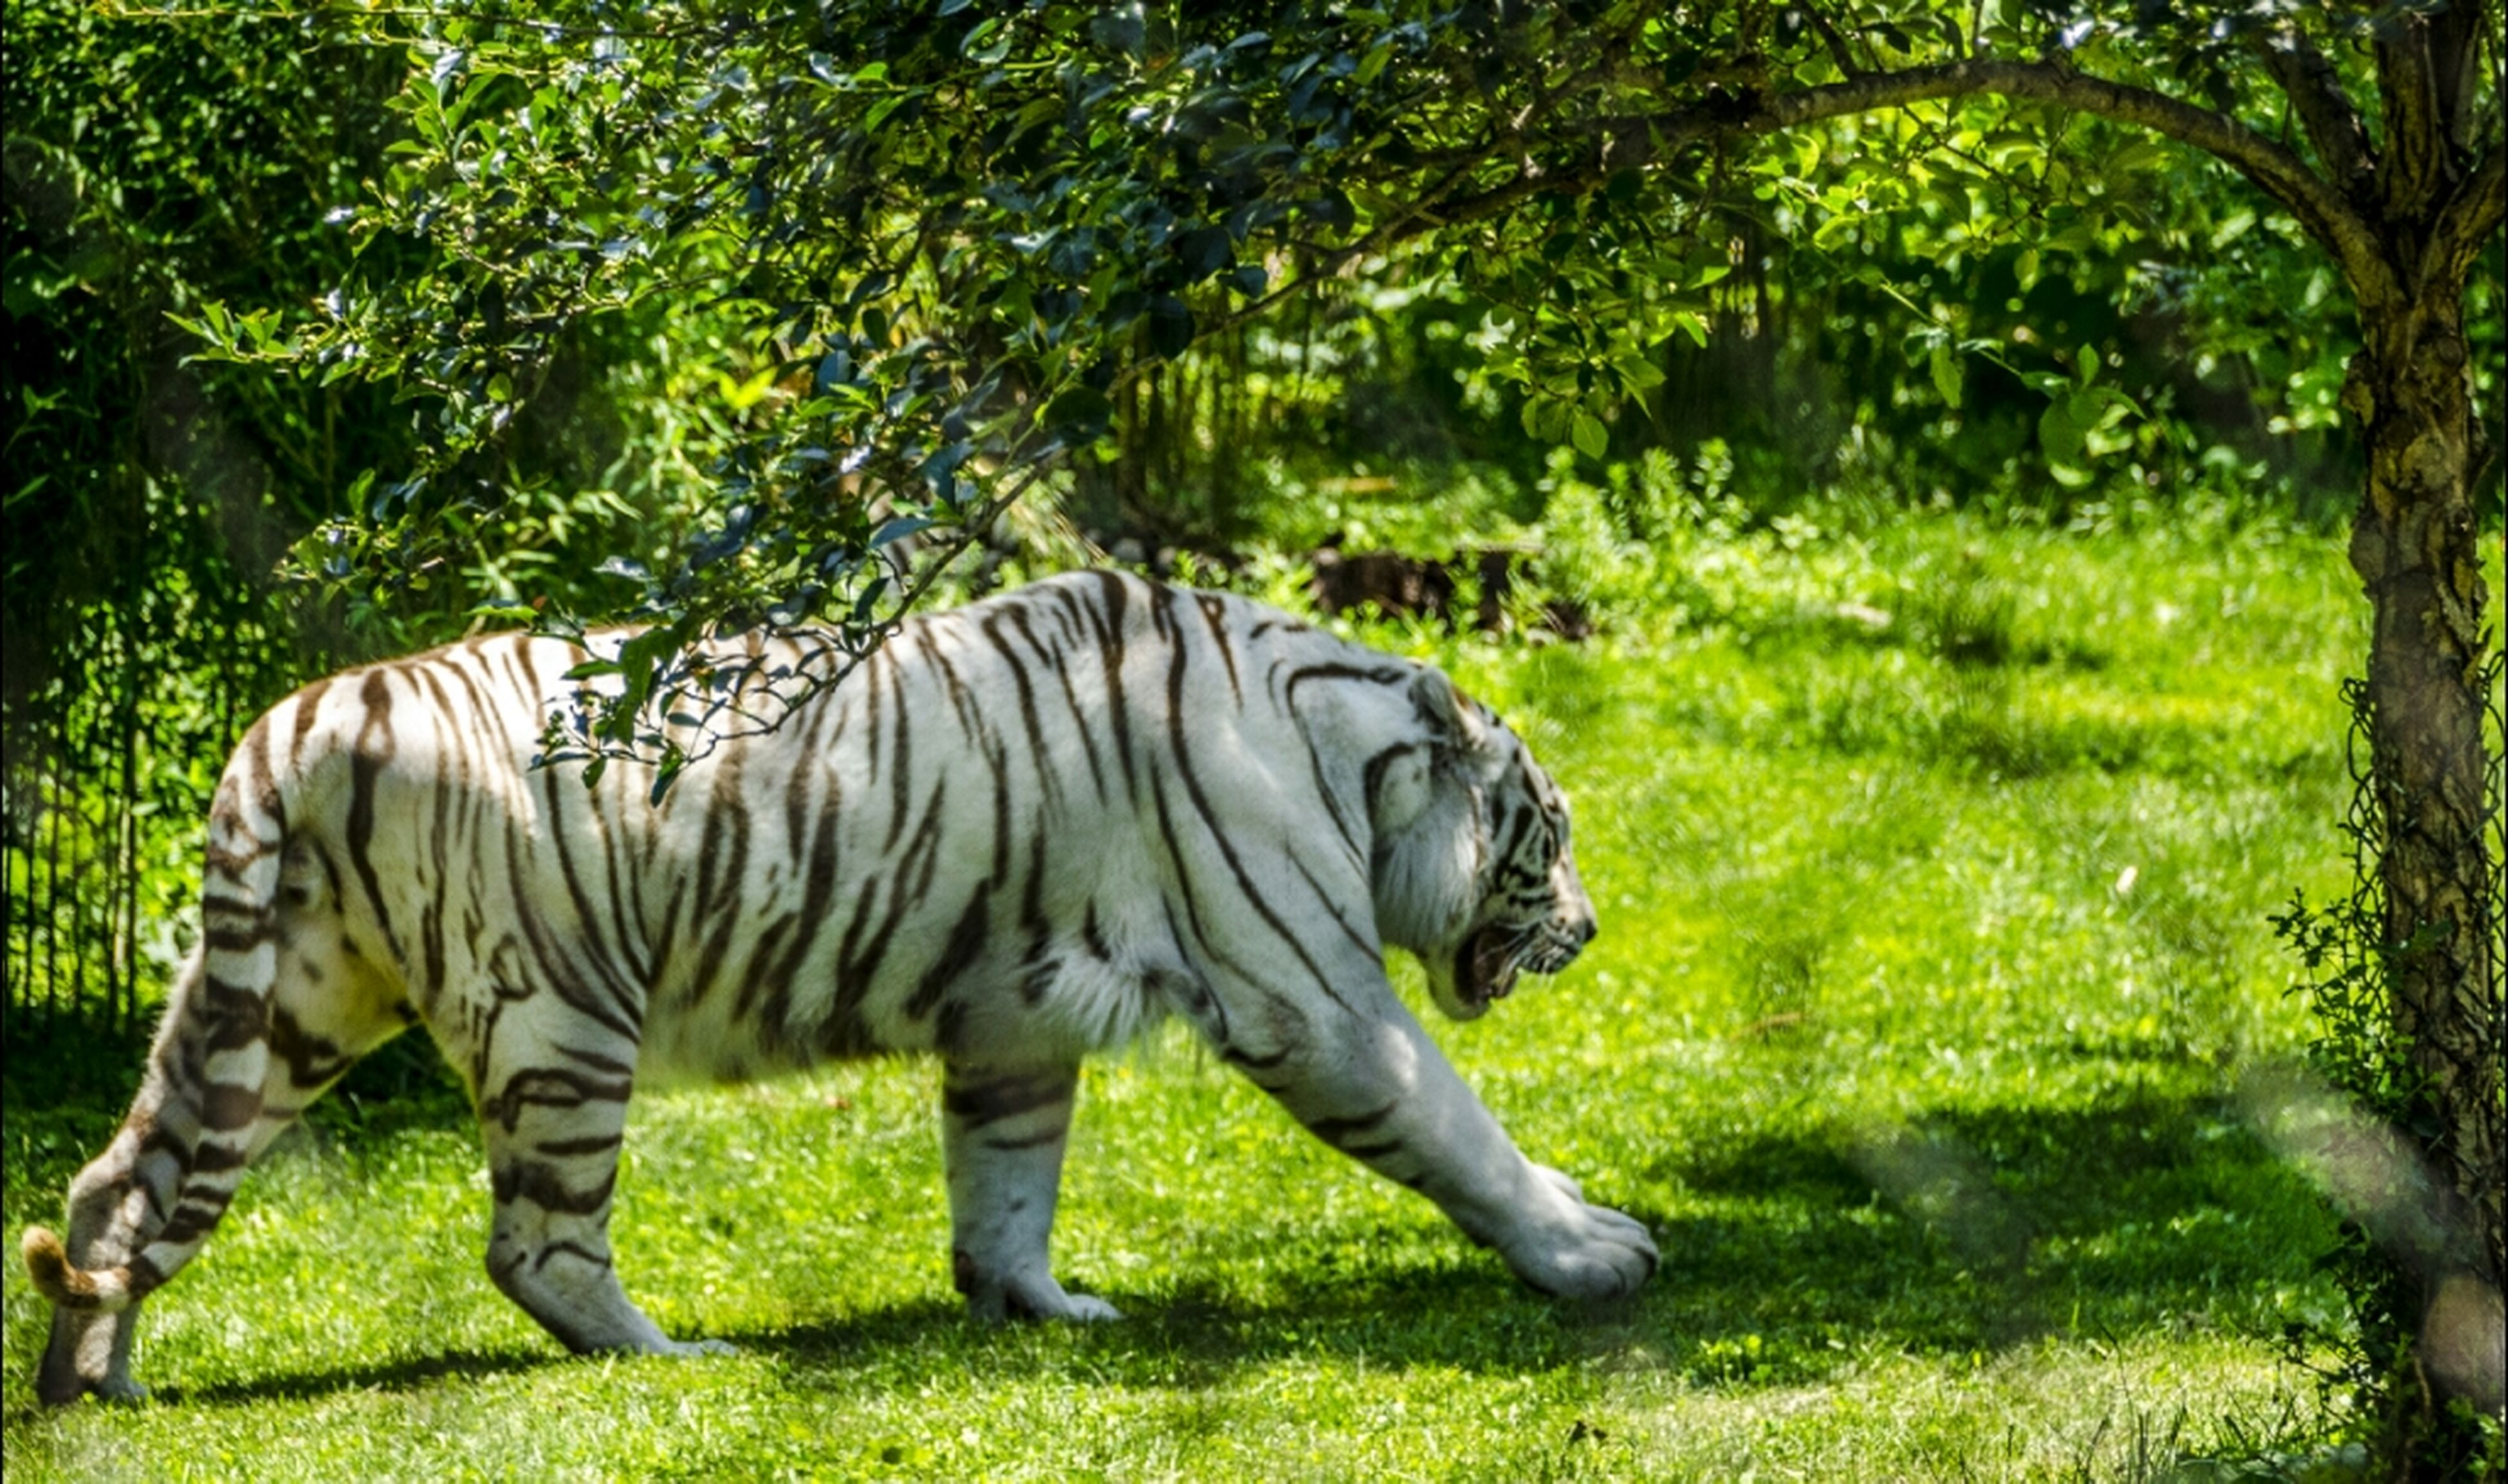 grass, animal themes, green color, field, mammal, sculpture, grassy, tree, statue, art and craft, art, one animal, safari animals, animals in the wild, wildlife, nature, creativity, full length, no people, elephant